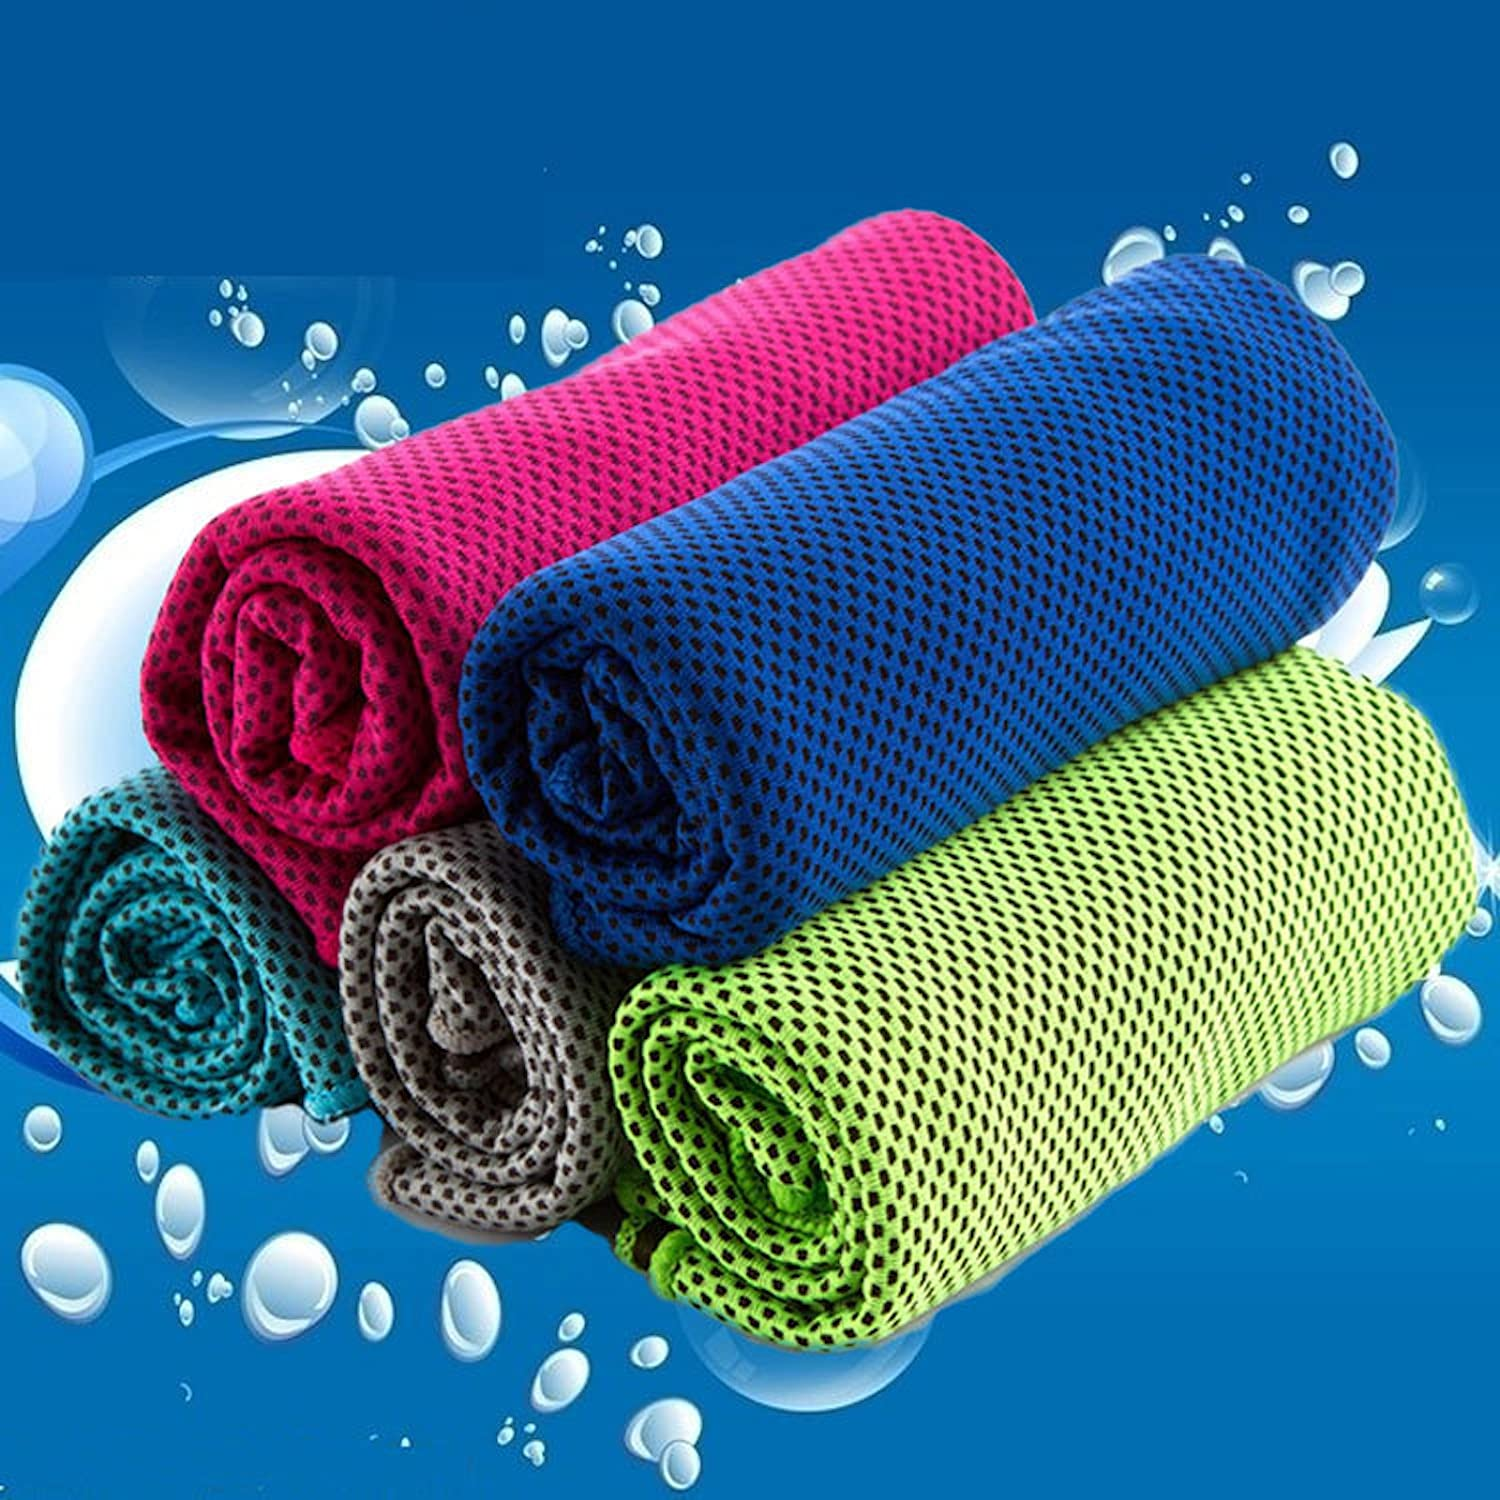 Elonglin Cooling Microfibre Towel Ice Cold quick dry towel EXTRA LARGE Super Absorbent Lightweight for Instant Relief Stay Cool travel gym Fitness Travel camping swim yoga Hiking Beach pilates